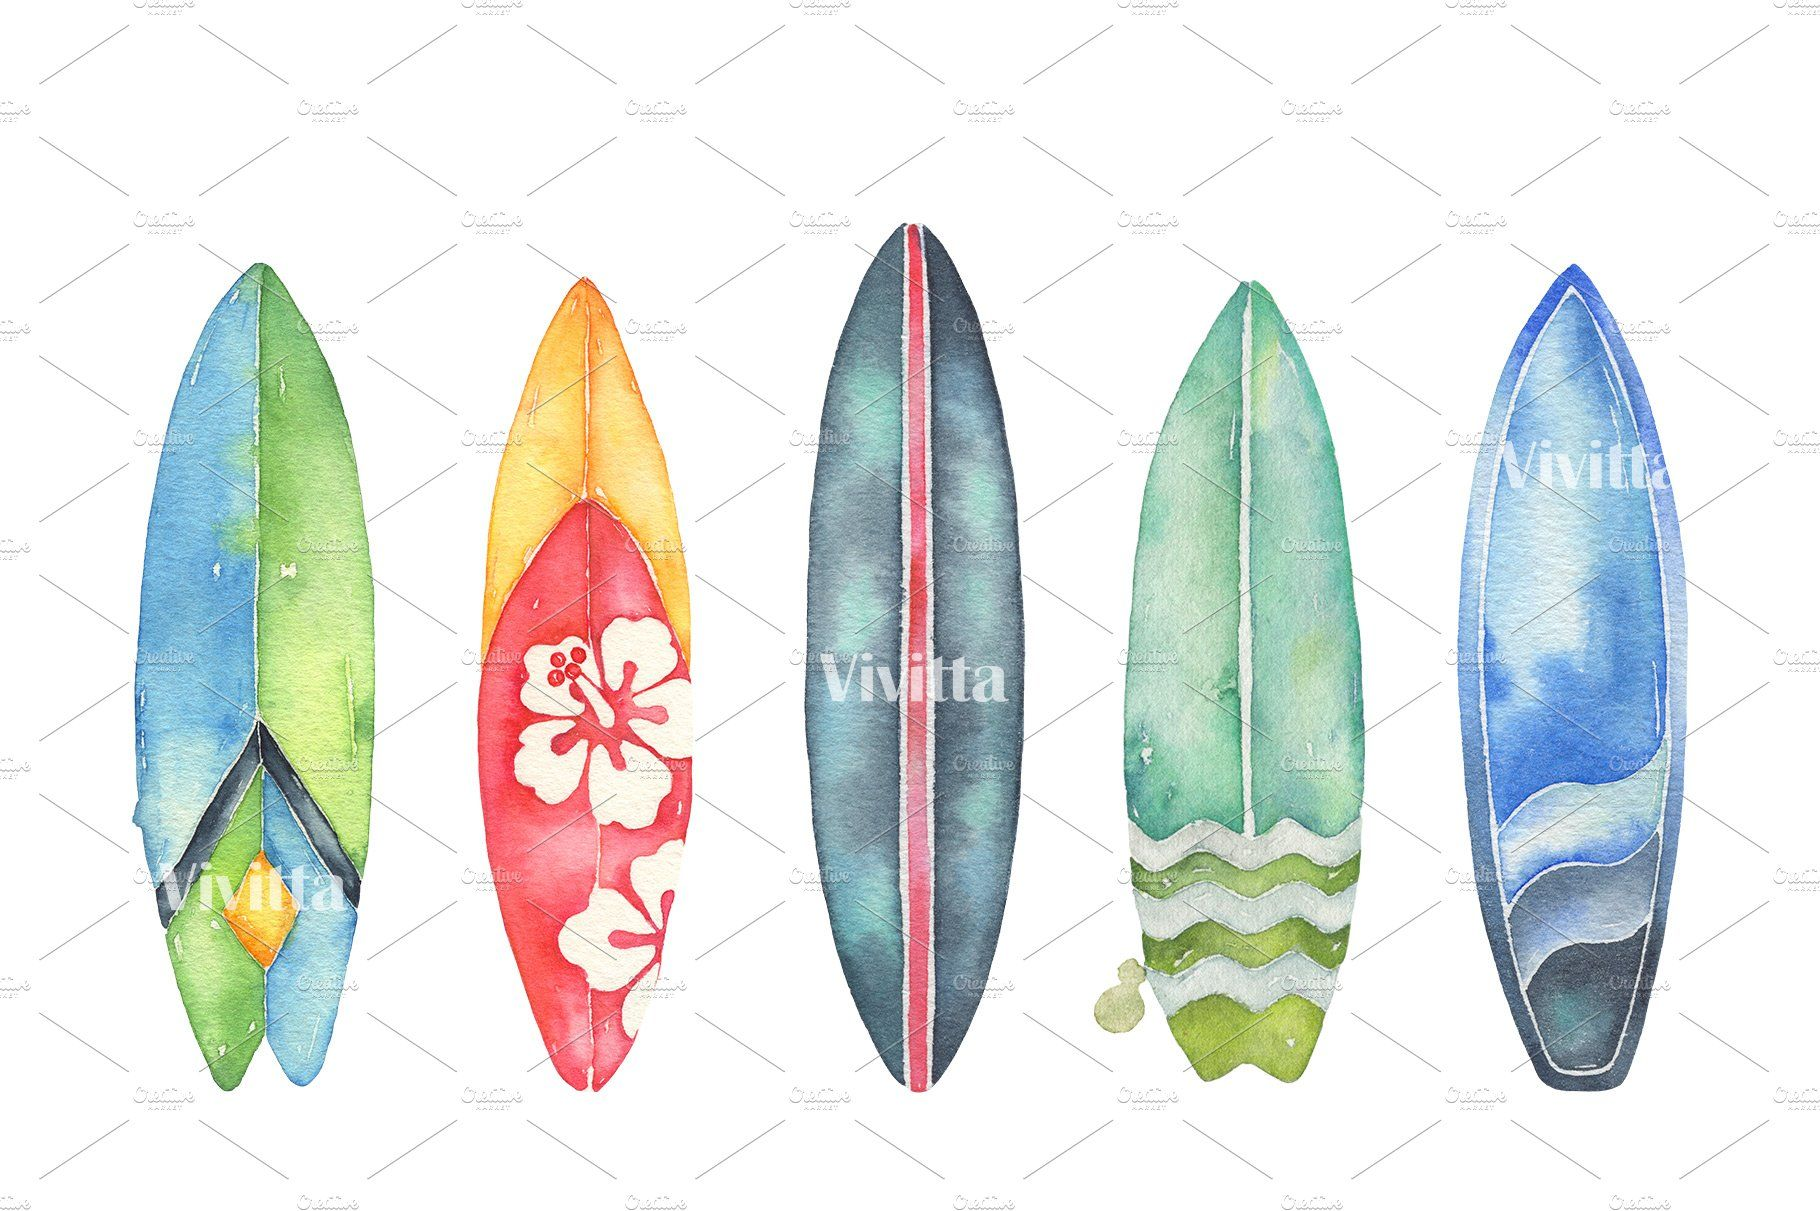 Water color surfboard clipart jpg black and white Surfing watercolor clipart set watercolor#set#Surfing ... jpg black and white